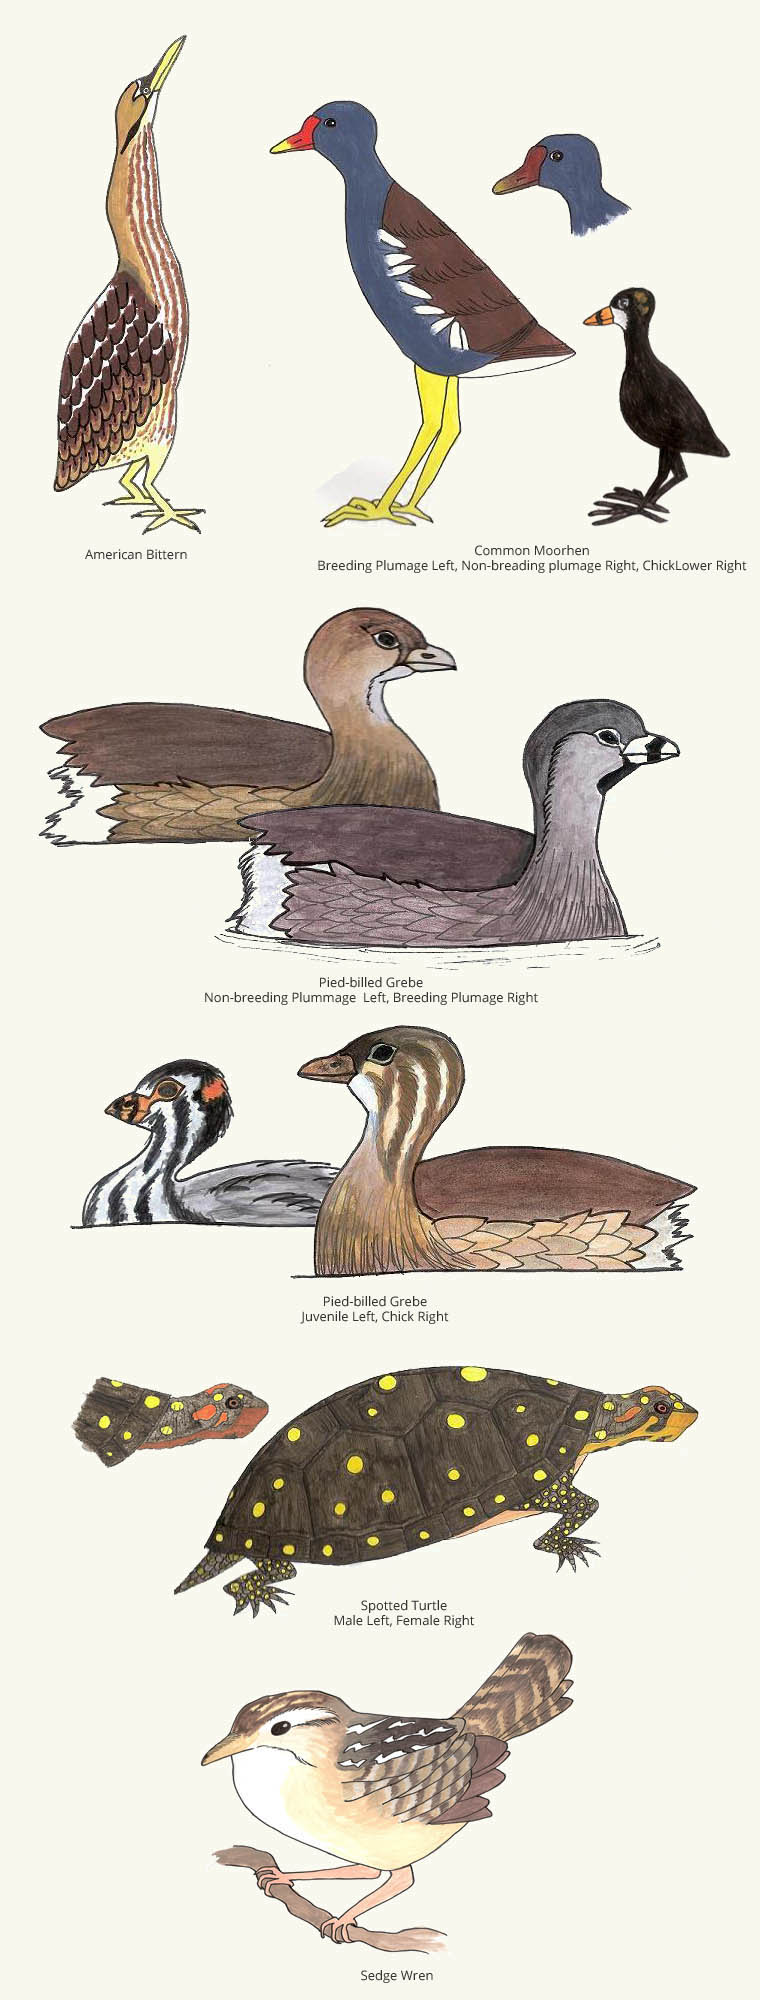 Rare Species at Assabet River NWR. Illustrations by Sohini Marjadi